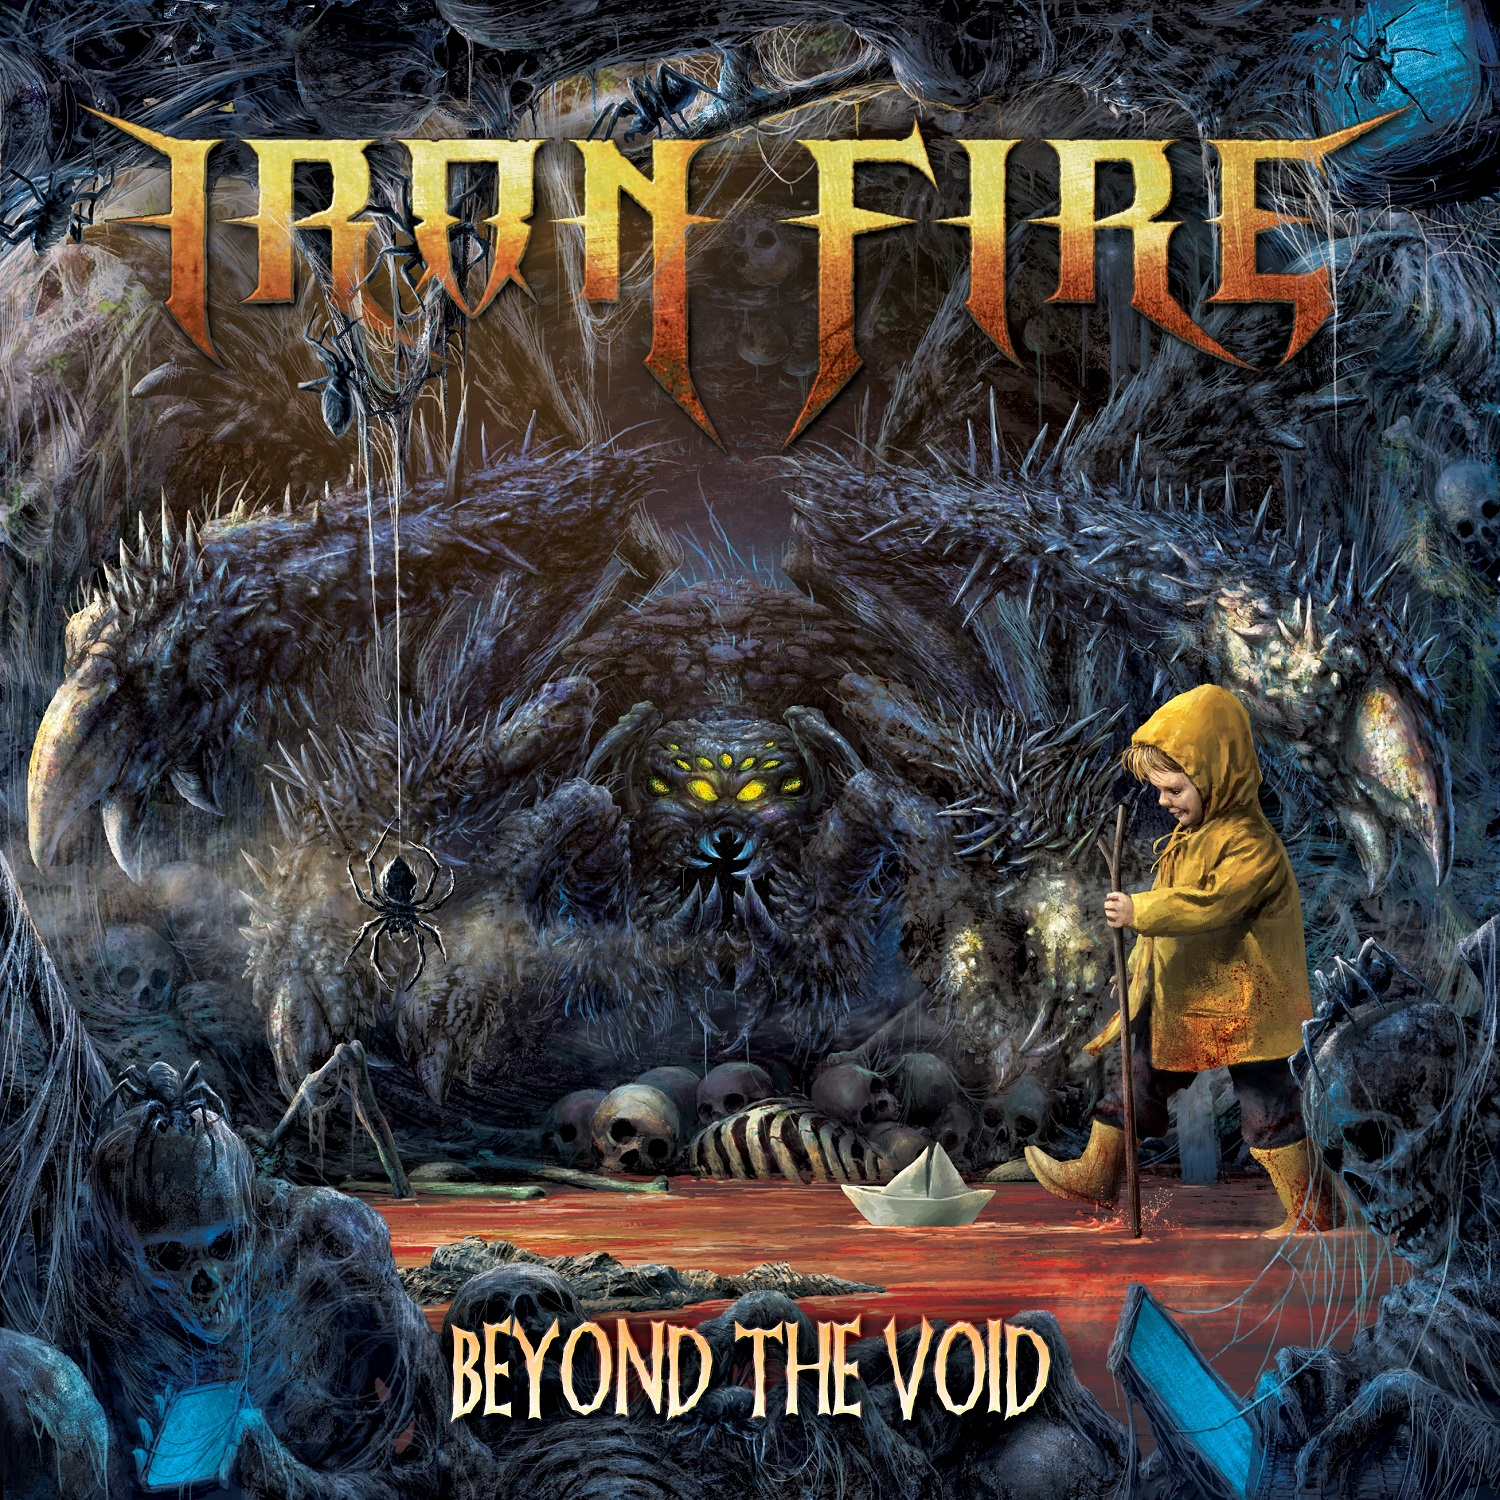 iron-fire-beyond-the-void-danish-dynamite-album-review